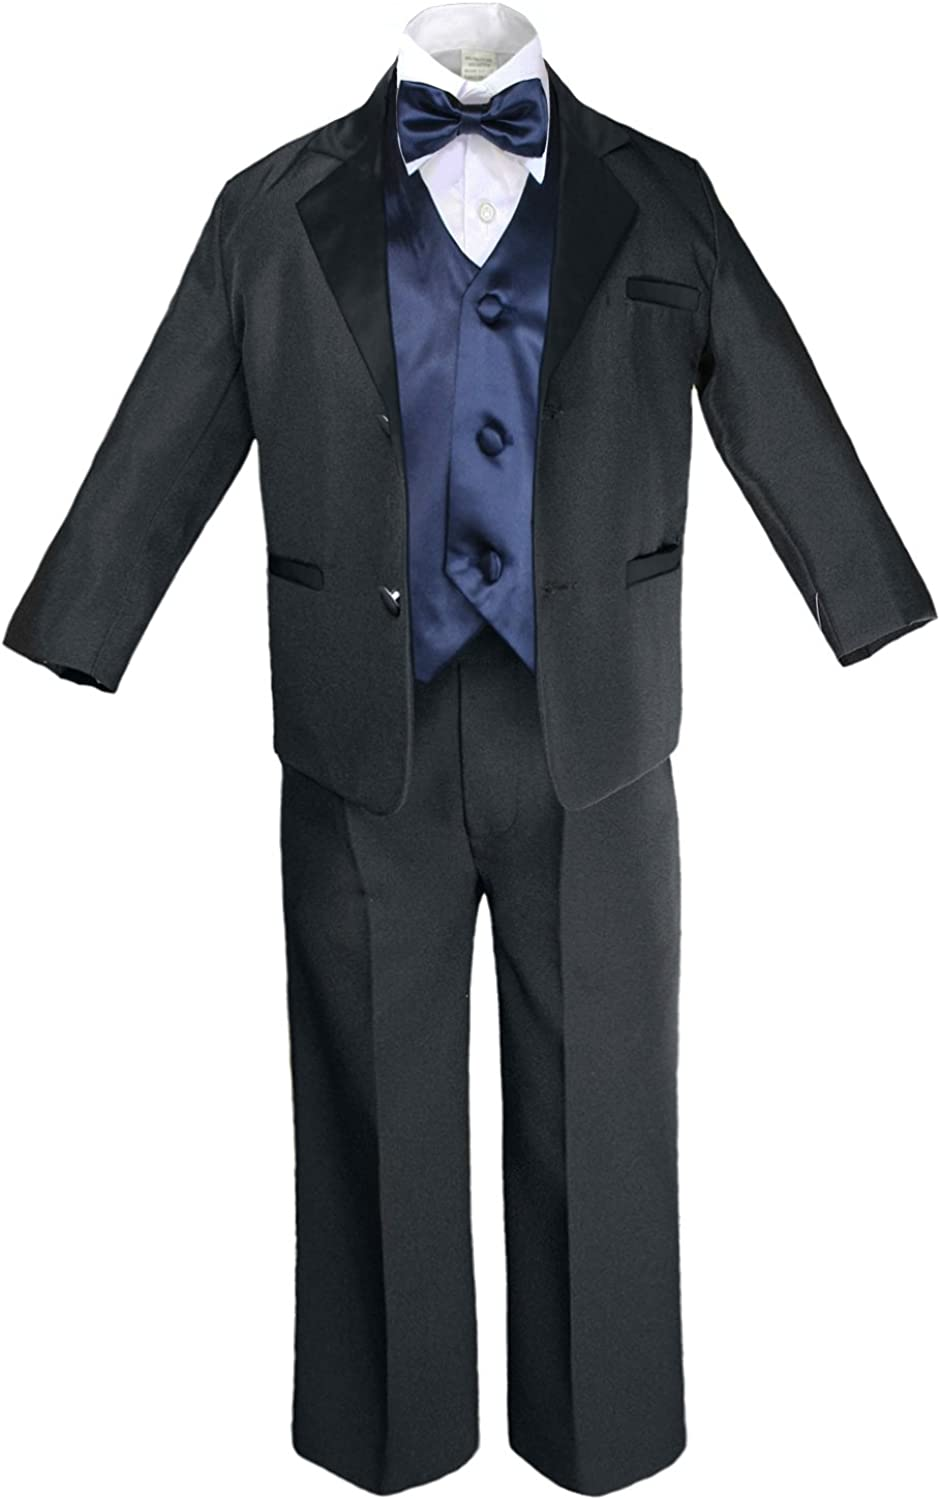 Baby Toddler Boys Green Teal Turquoise Wedding Formal Vest Set Tuxedo Suits S-20